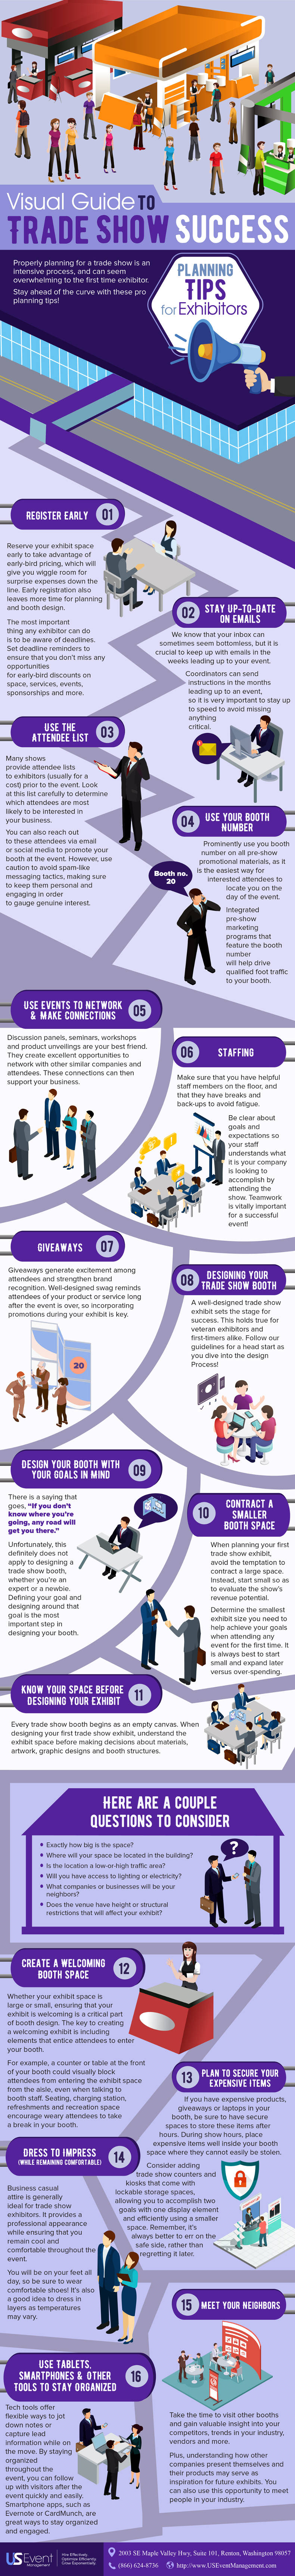 trade show best practices infographic